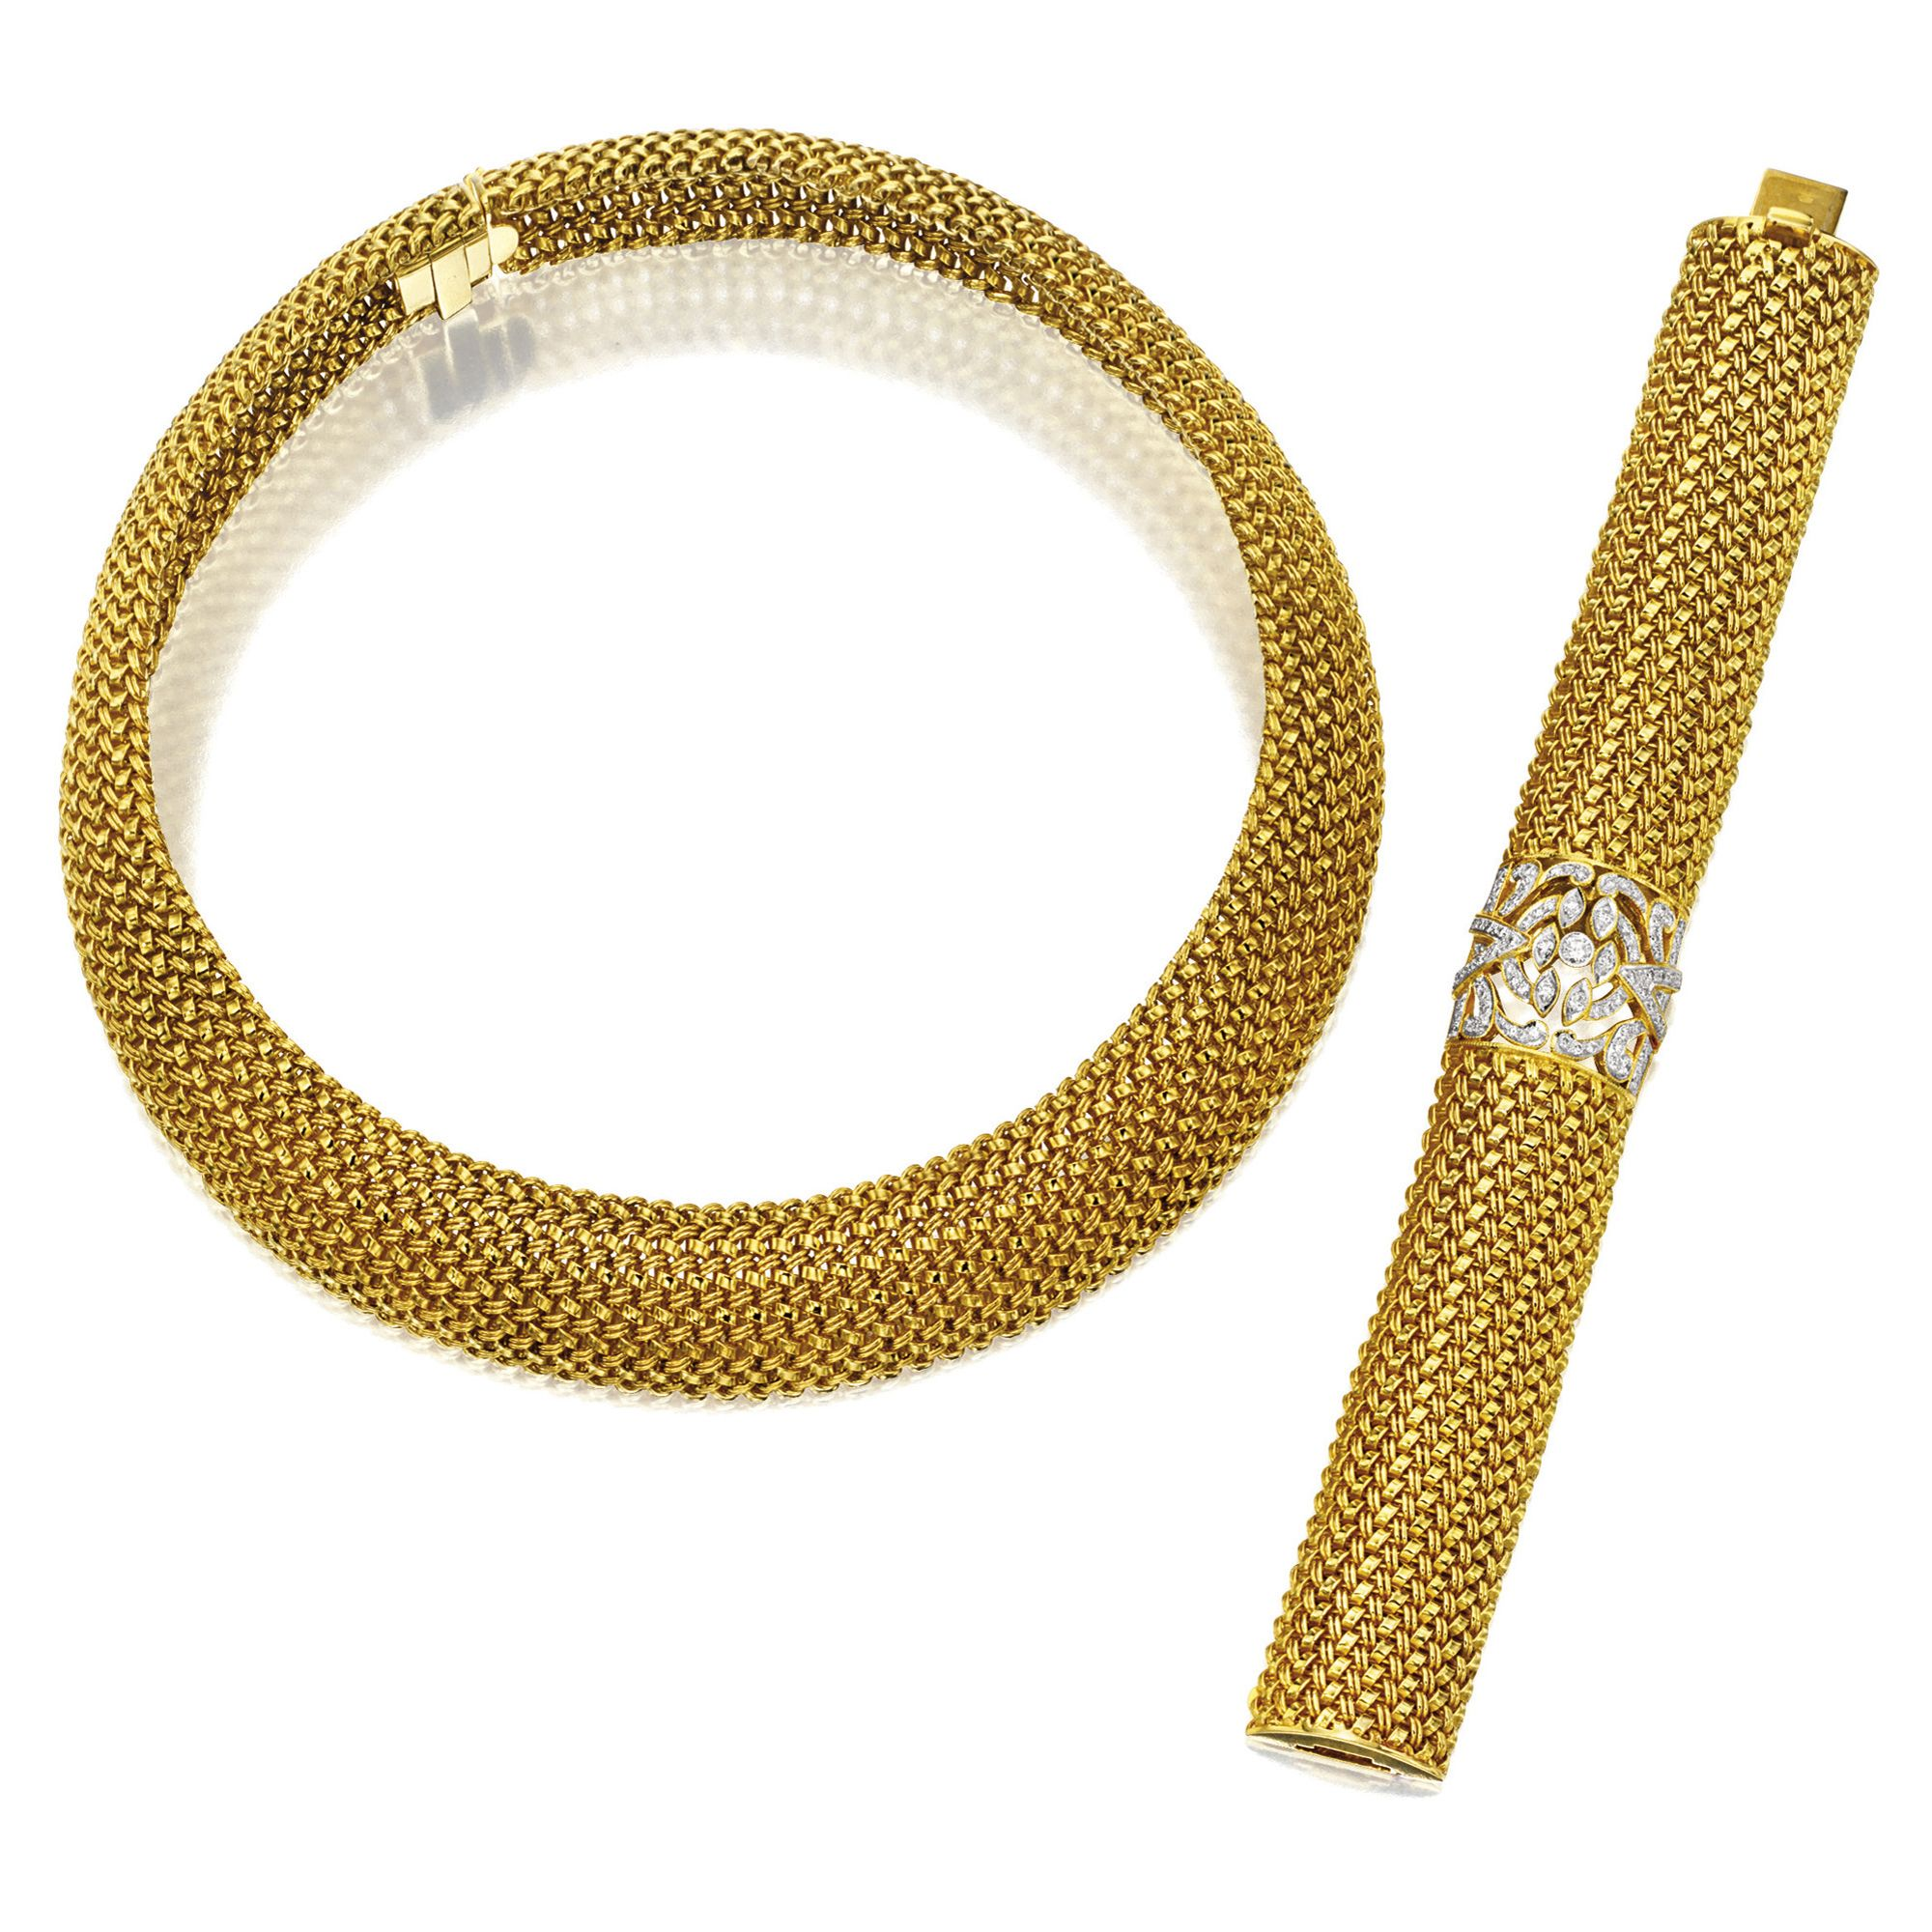 karat gold necklace and a matching gold and diamond bracelet the